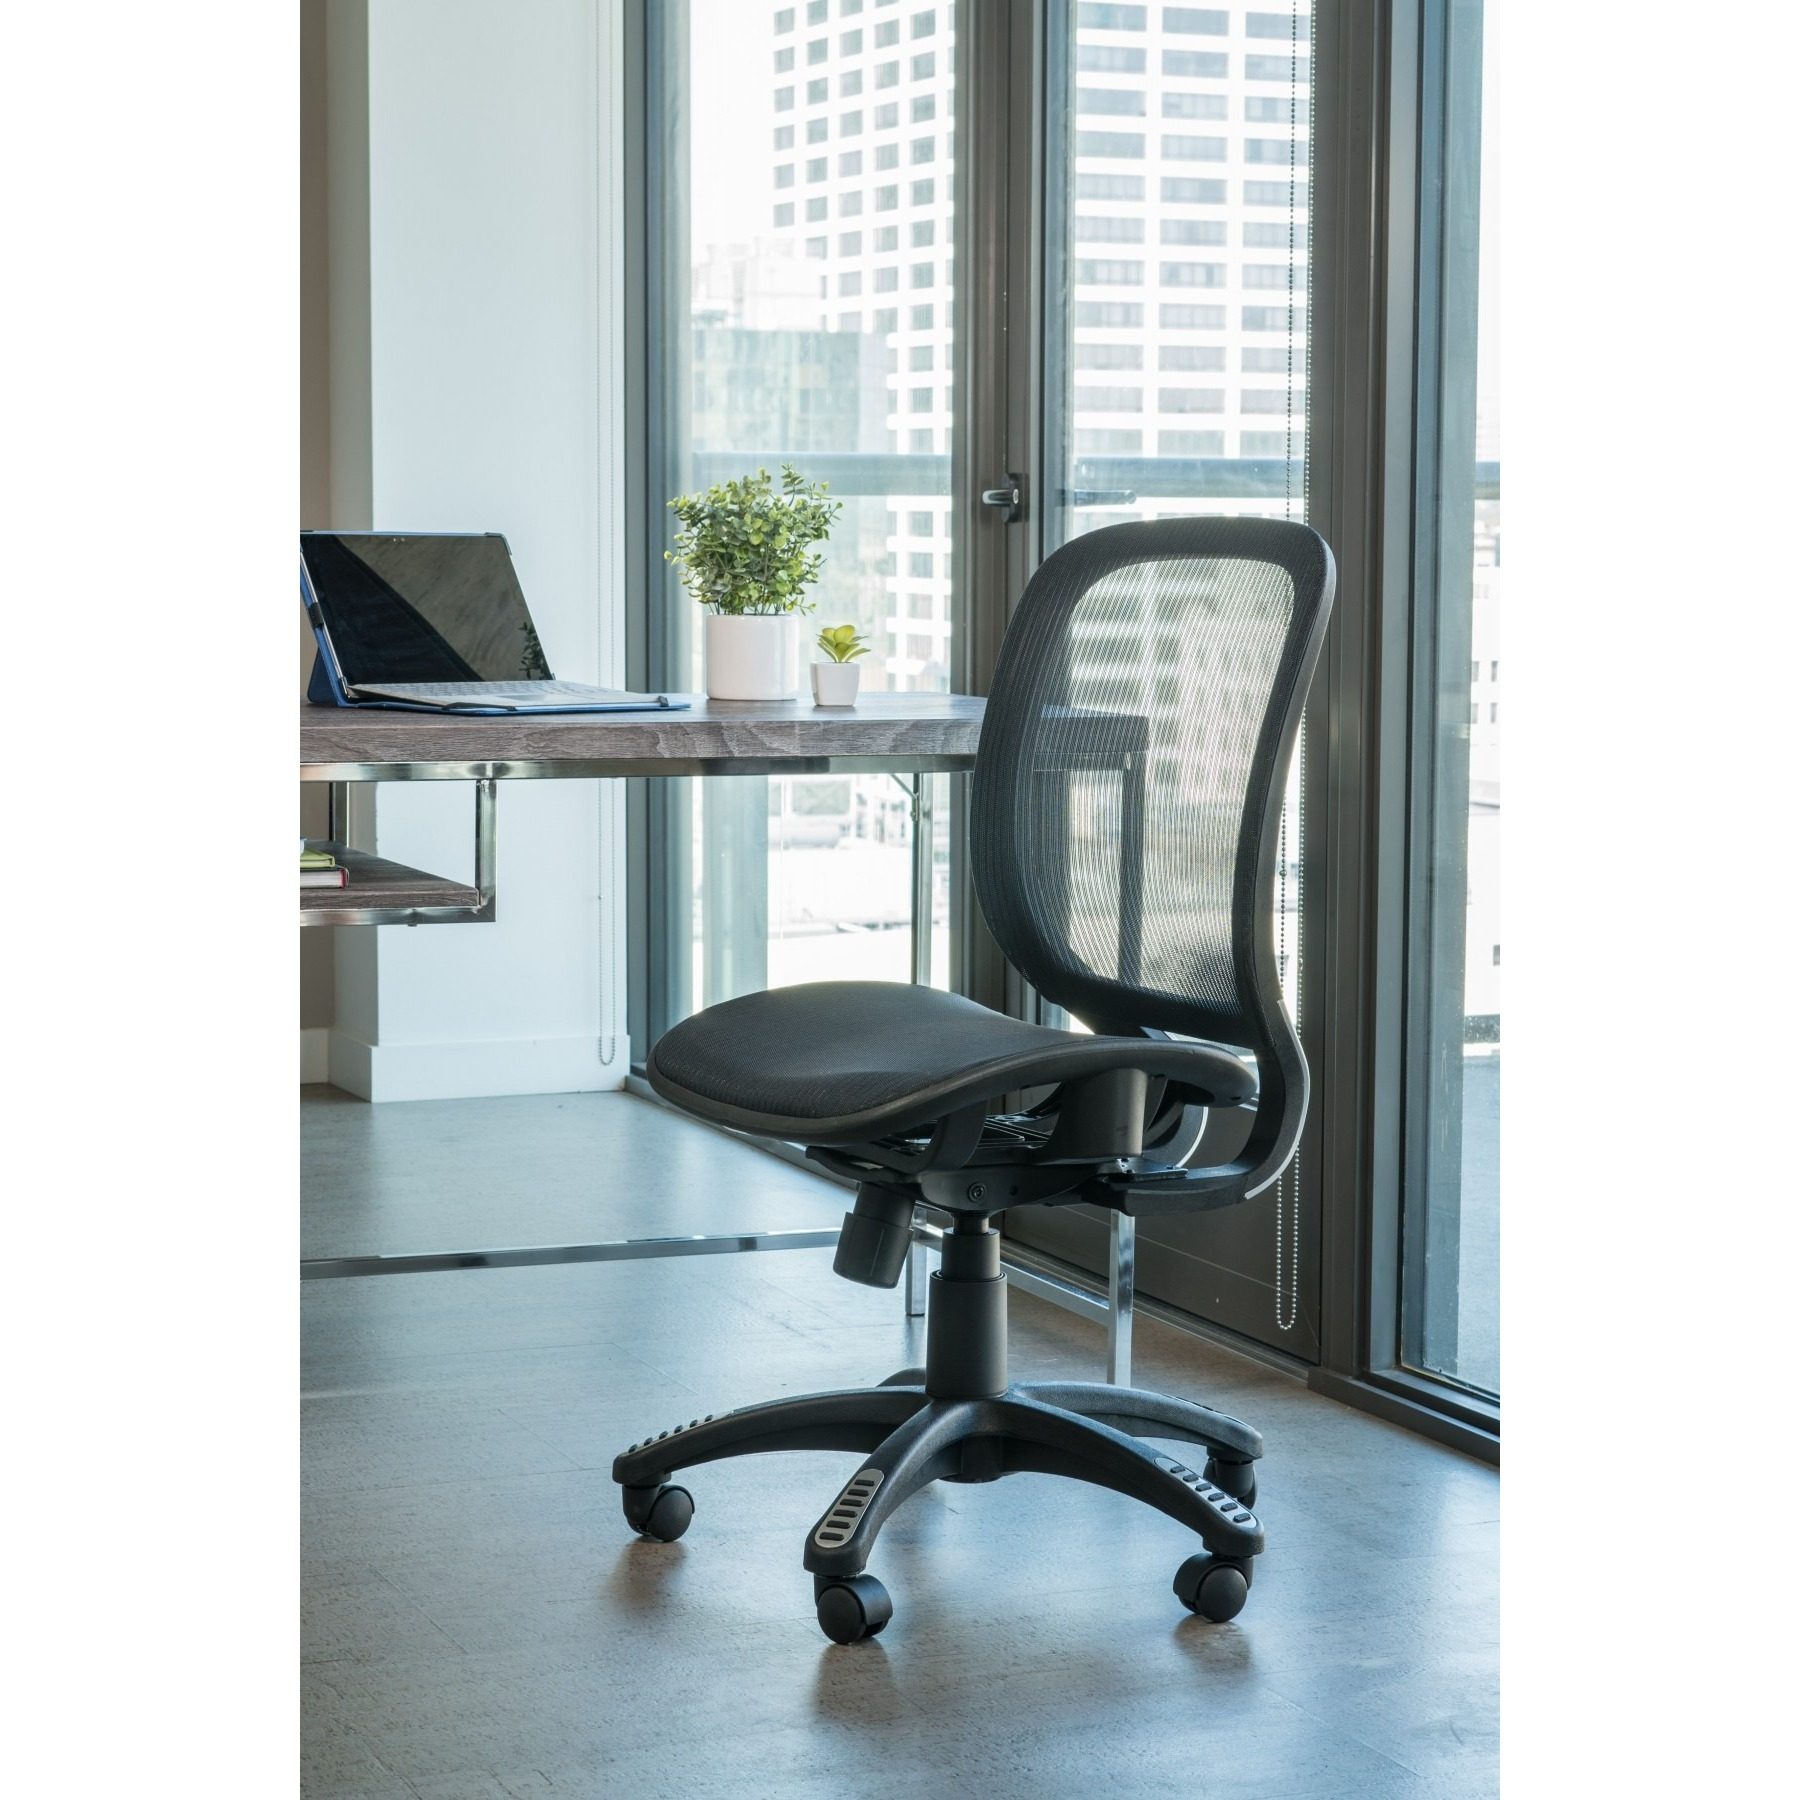 Fabulous Ergomax Office Fully Meshed Ergonomic Height Adjustable Black Office Chair No Armrests No Headrest 42 Inch Max Height Gmtry Best Dining Table And Chair Ideas Images Gmtryco